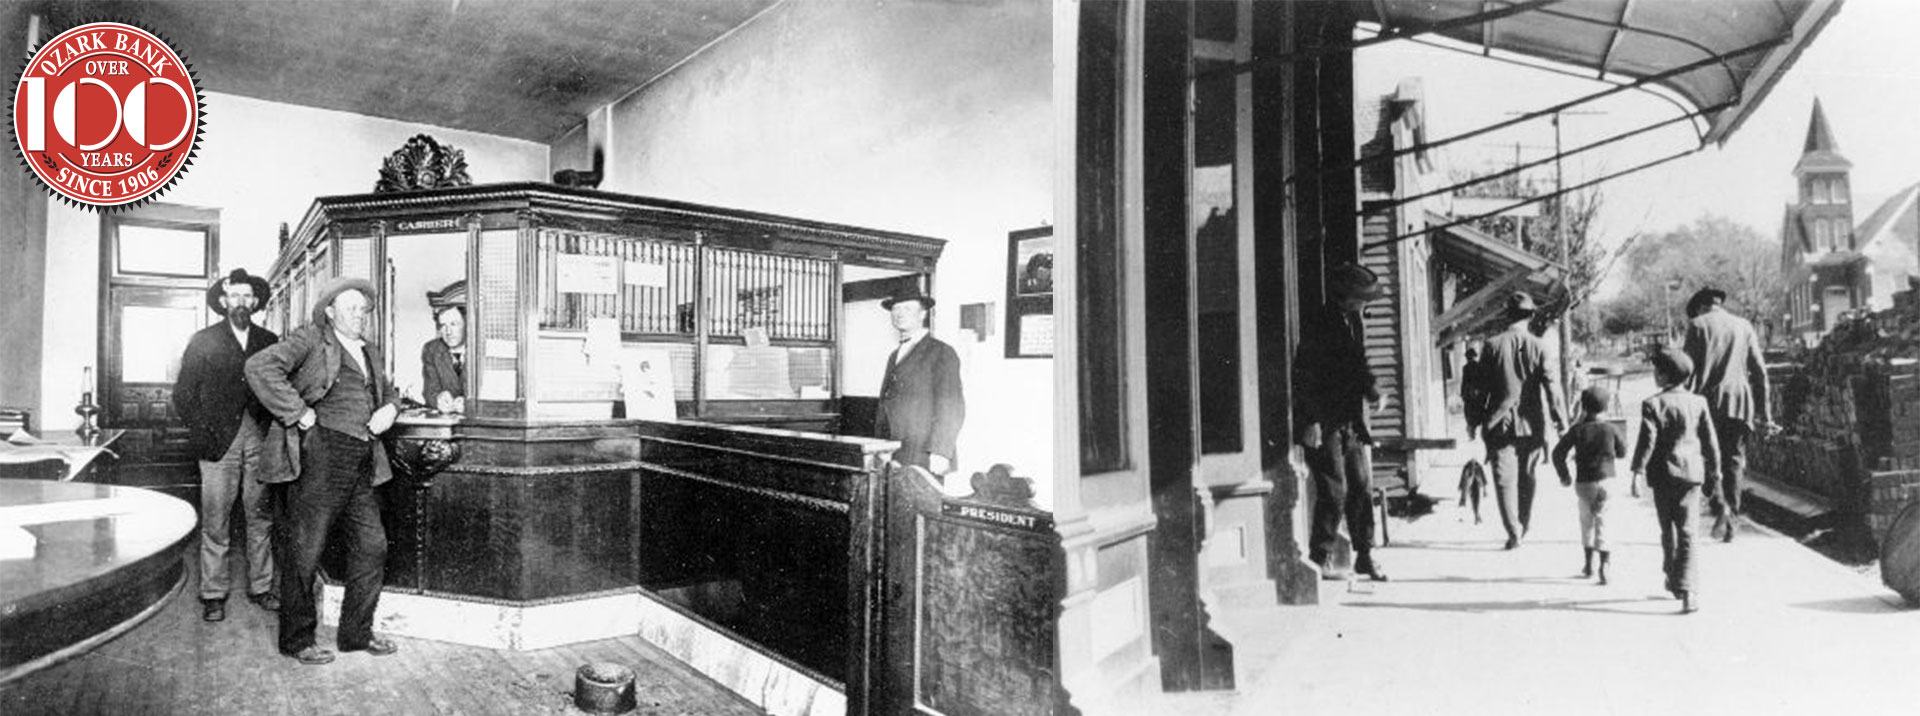 Ozark Bank historical image with bank interior and street